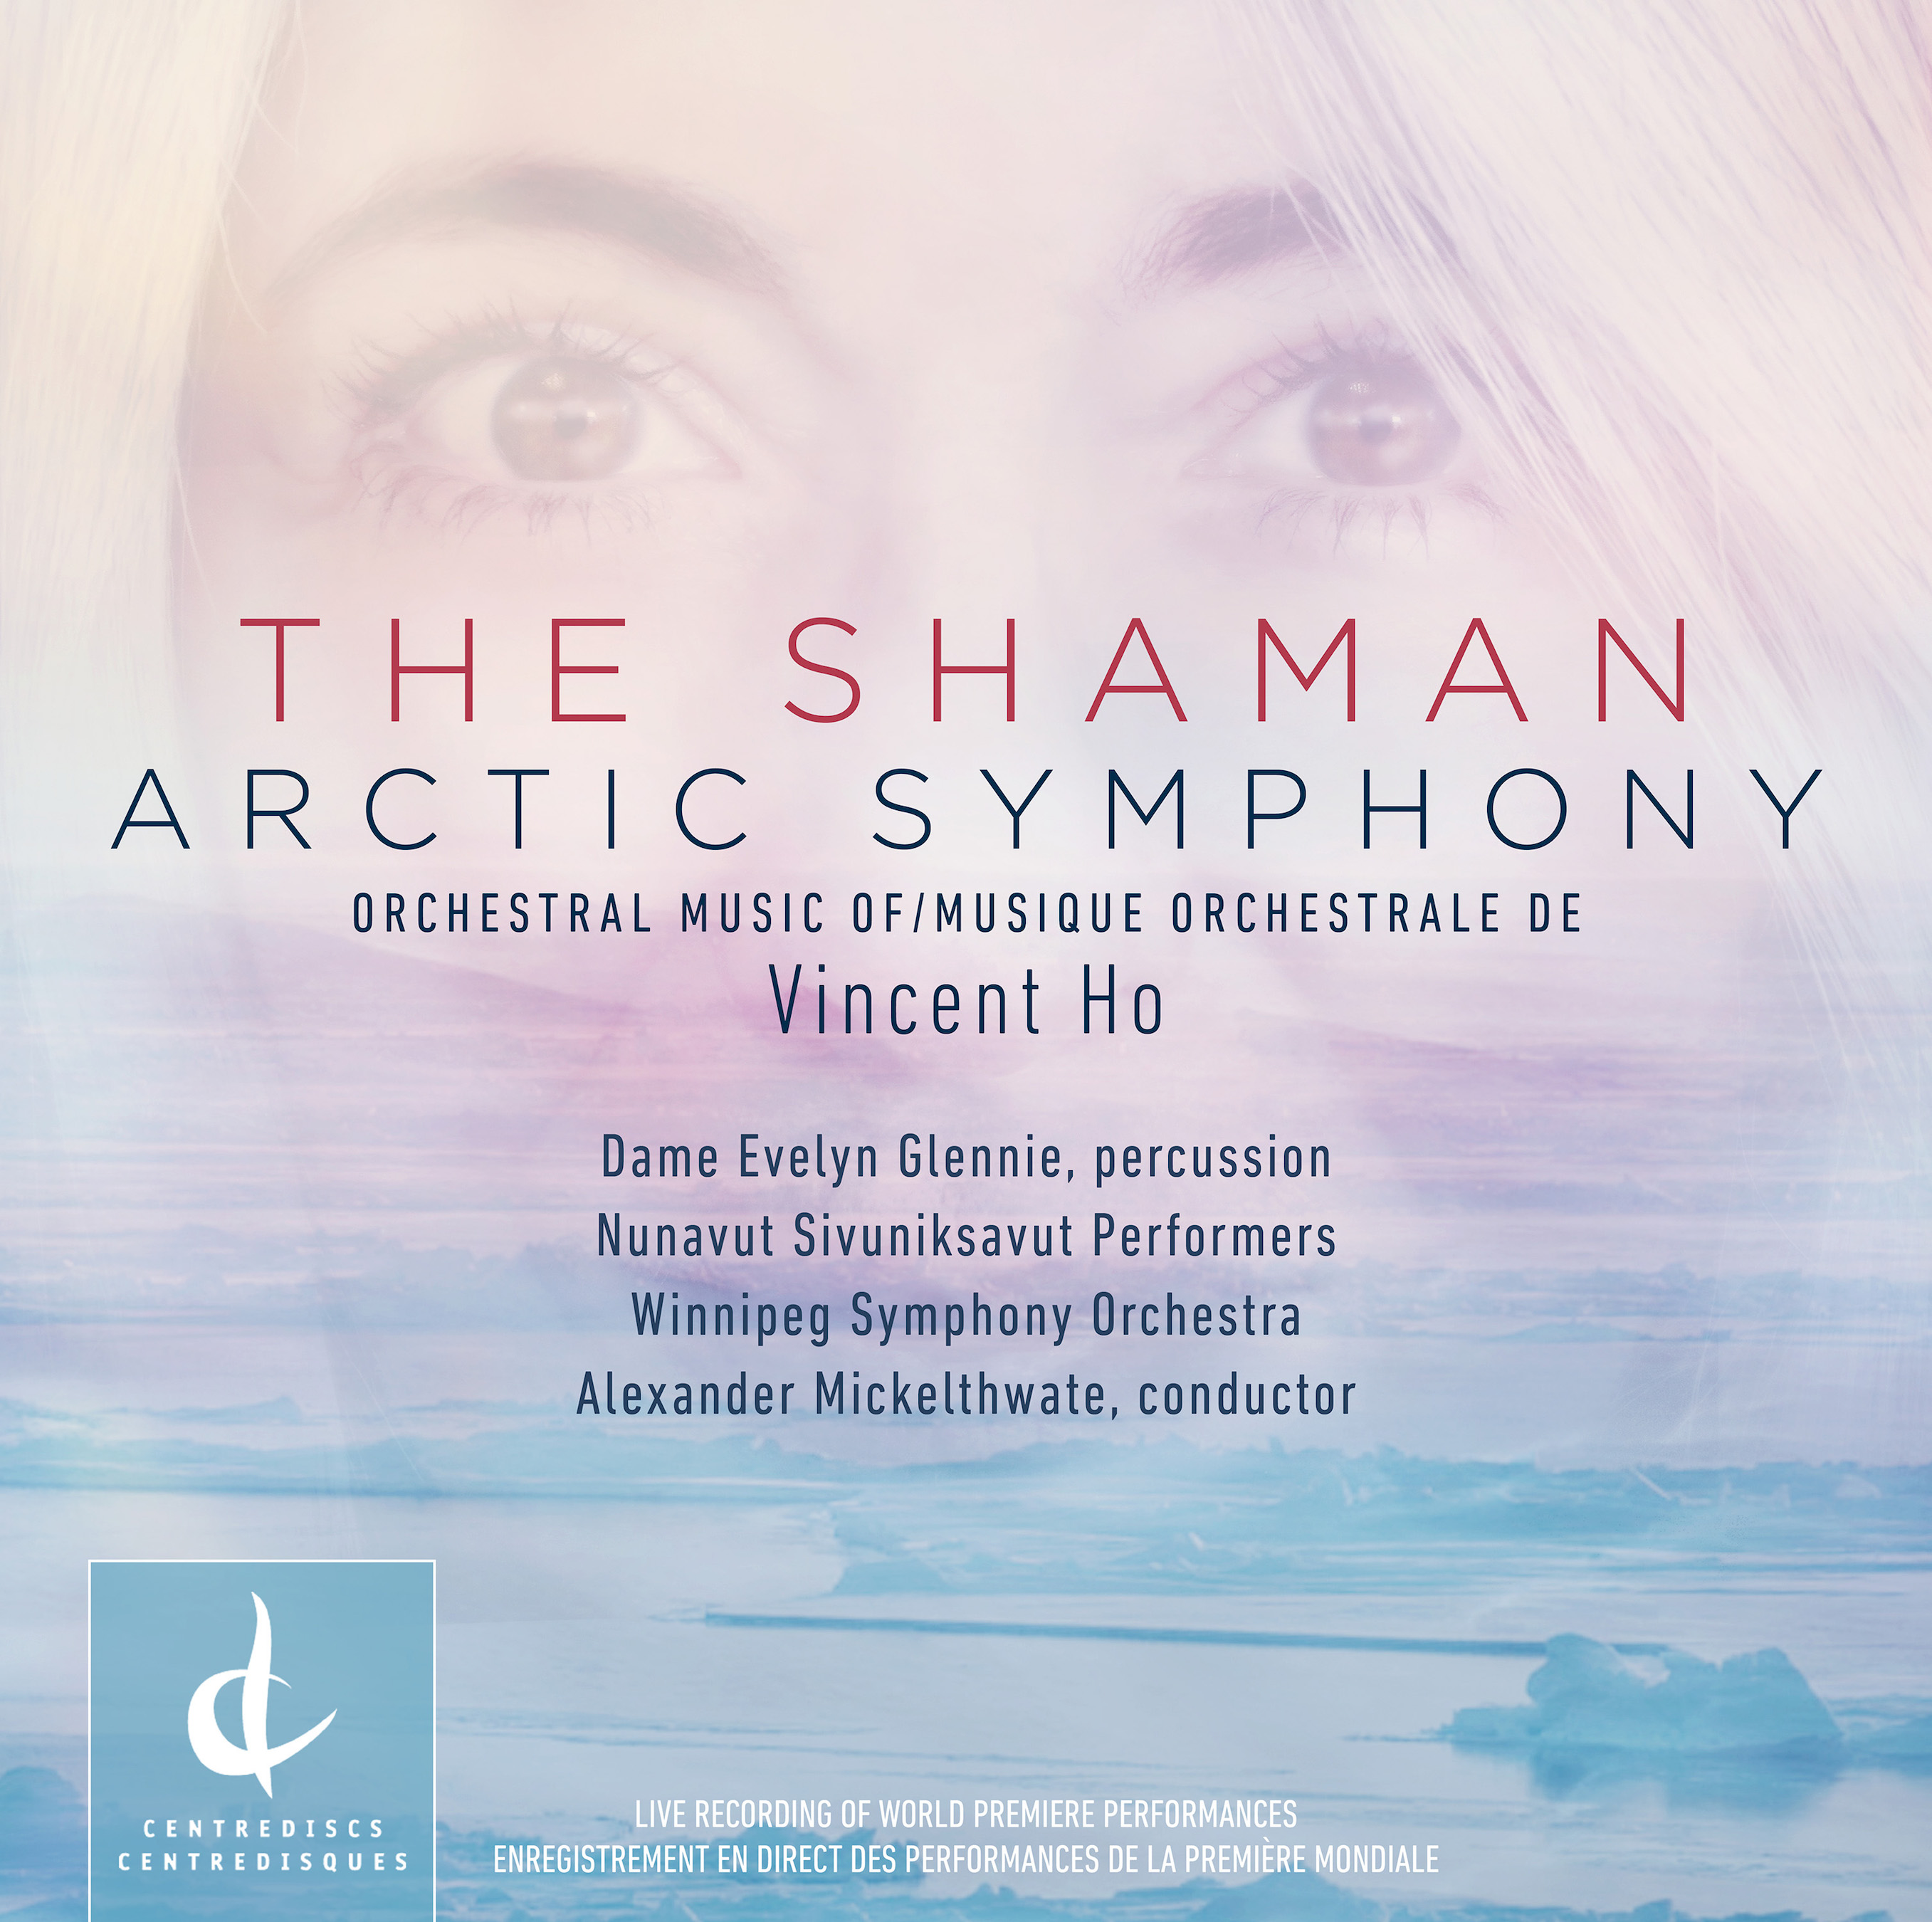 The Shaman; Arctic Symphony – 2018 Juno Nominee; Classical Album of the Year, Large Ensemble, 2018 WCMA winner, Classical Artist/Ensemble of the Year